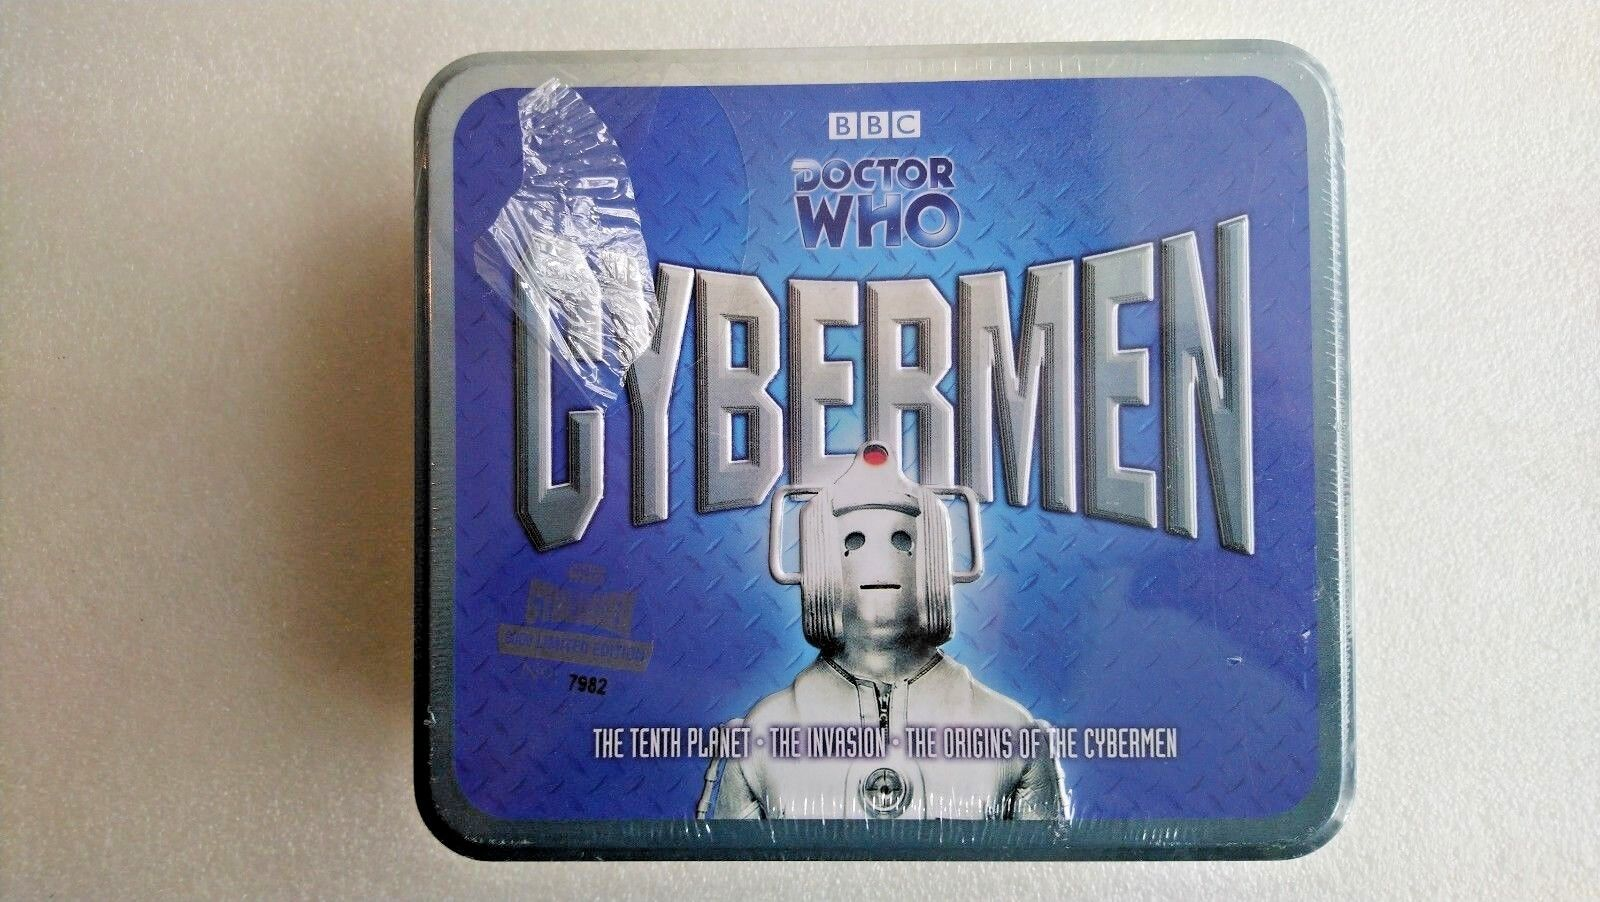 Doctor Who The Cybermen Limited  CD Tin Set (7982)  NEW AND SEALED